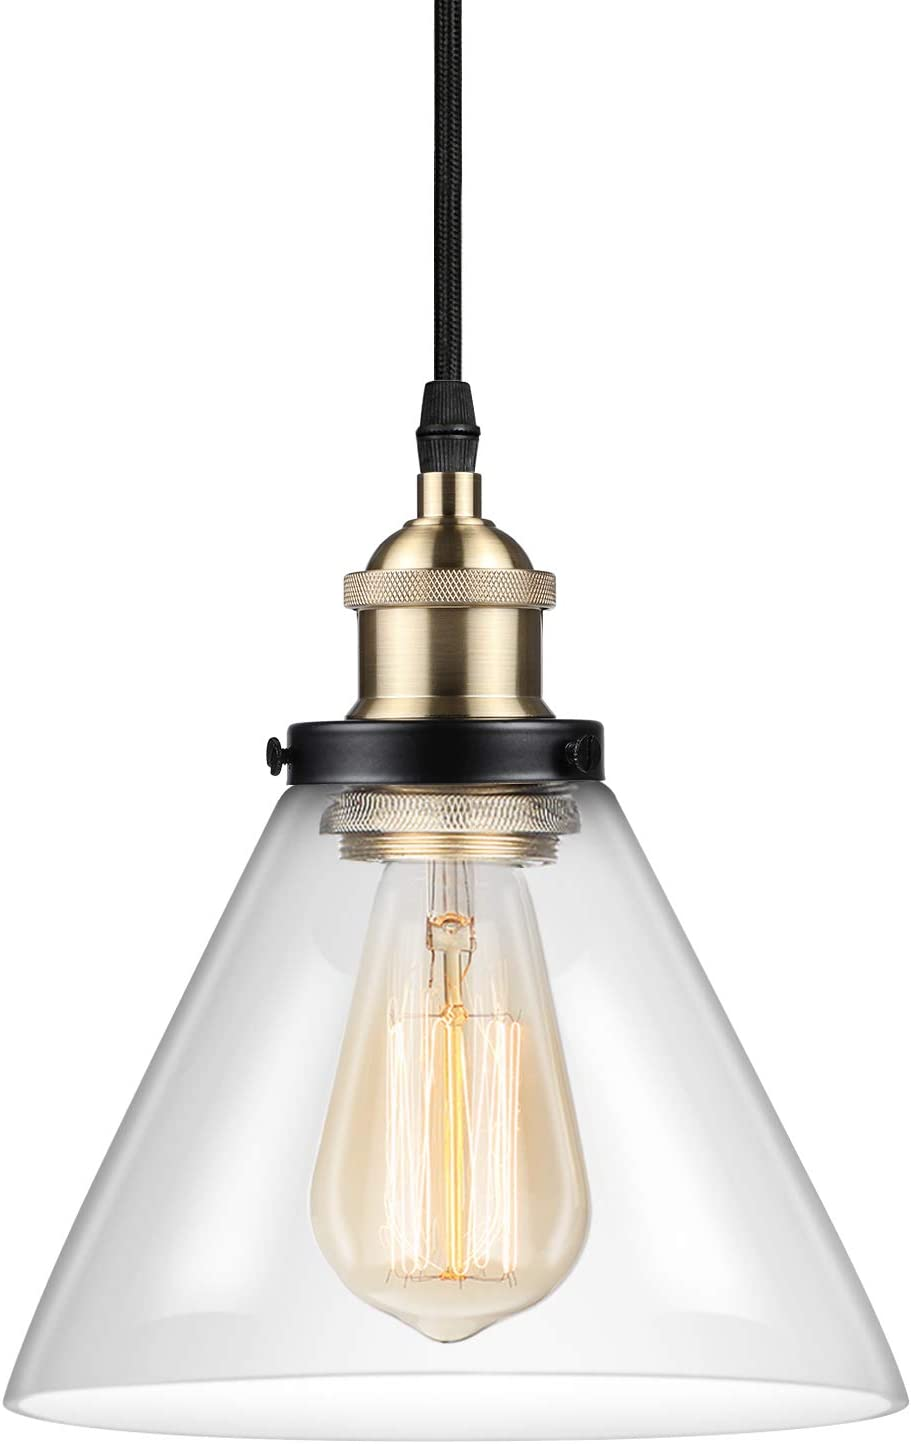 Ascher Industrial Edison Vintage Pendant Light, Clear Glass Shade 1-Light Ceiling Light Fixture, E26 Socket, 66.9 inches Adjustable Cord, Diameter 7.1 inches Bulb Not Included